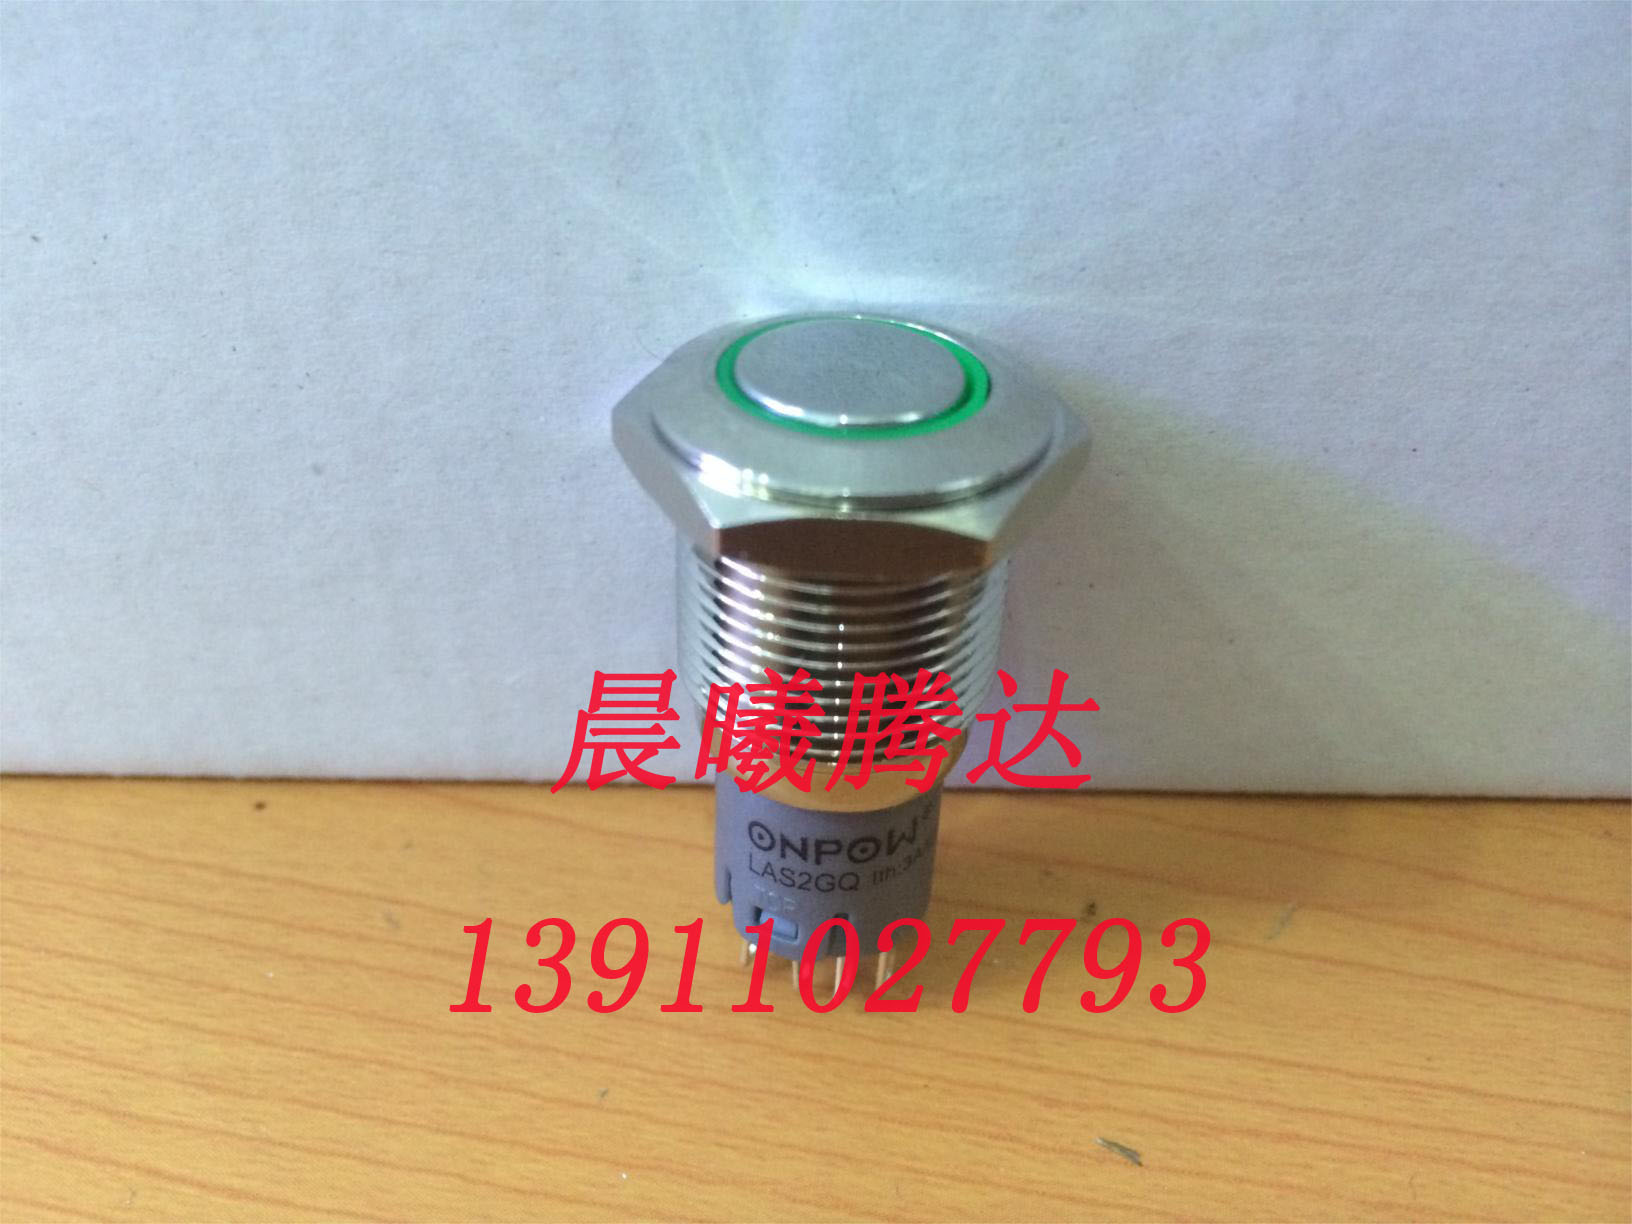 Zhejiang red wave metal button switch 12V with light switch with lock key LAS2GQH-11Z16MM